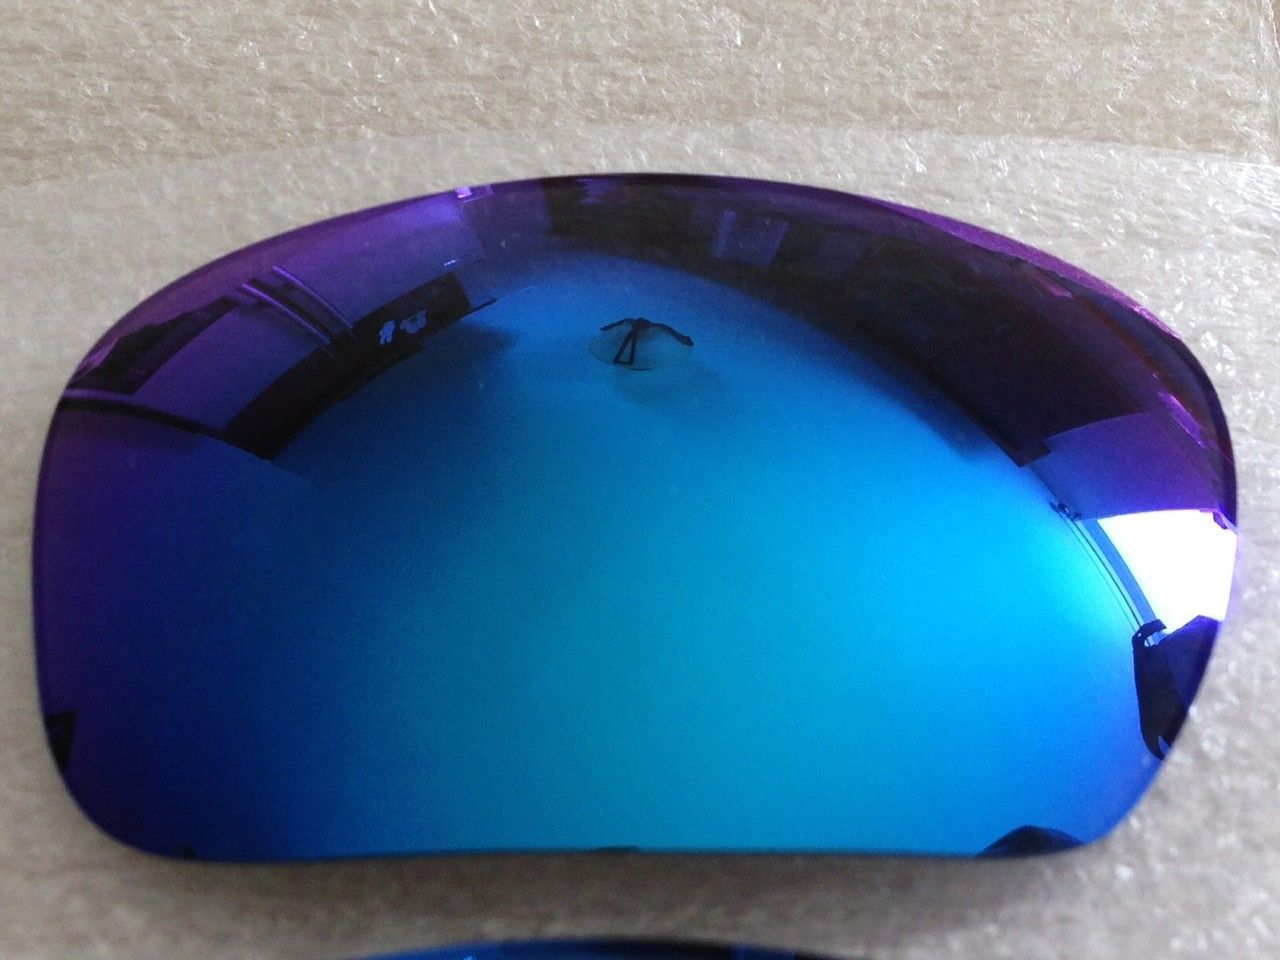 NEW GENUINE OAKLEY X-METAL BADMAN POLARIZED SAPPHIRE LENSES *PRICE DROPPED* - IMG_7138.JPG